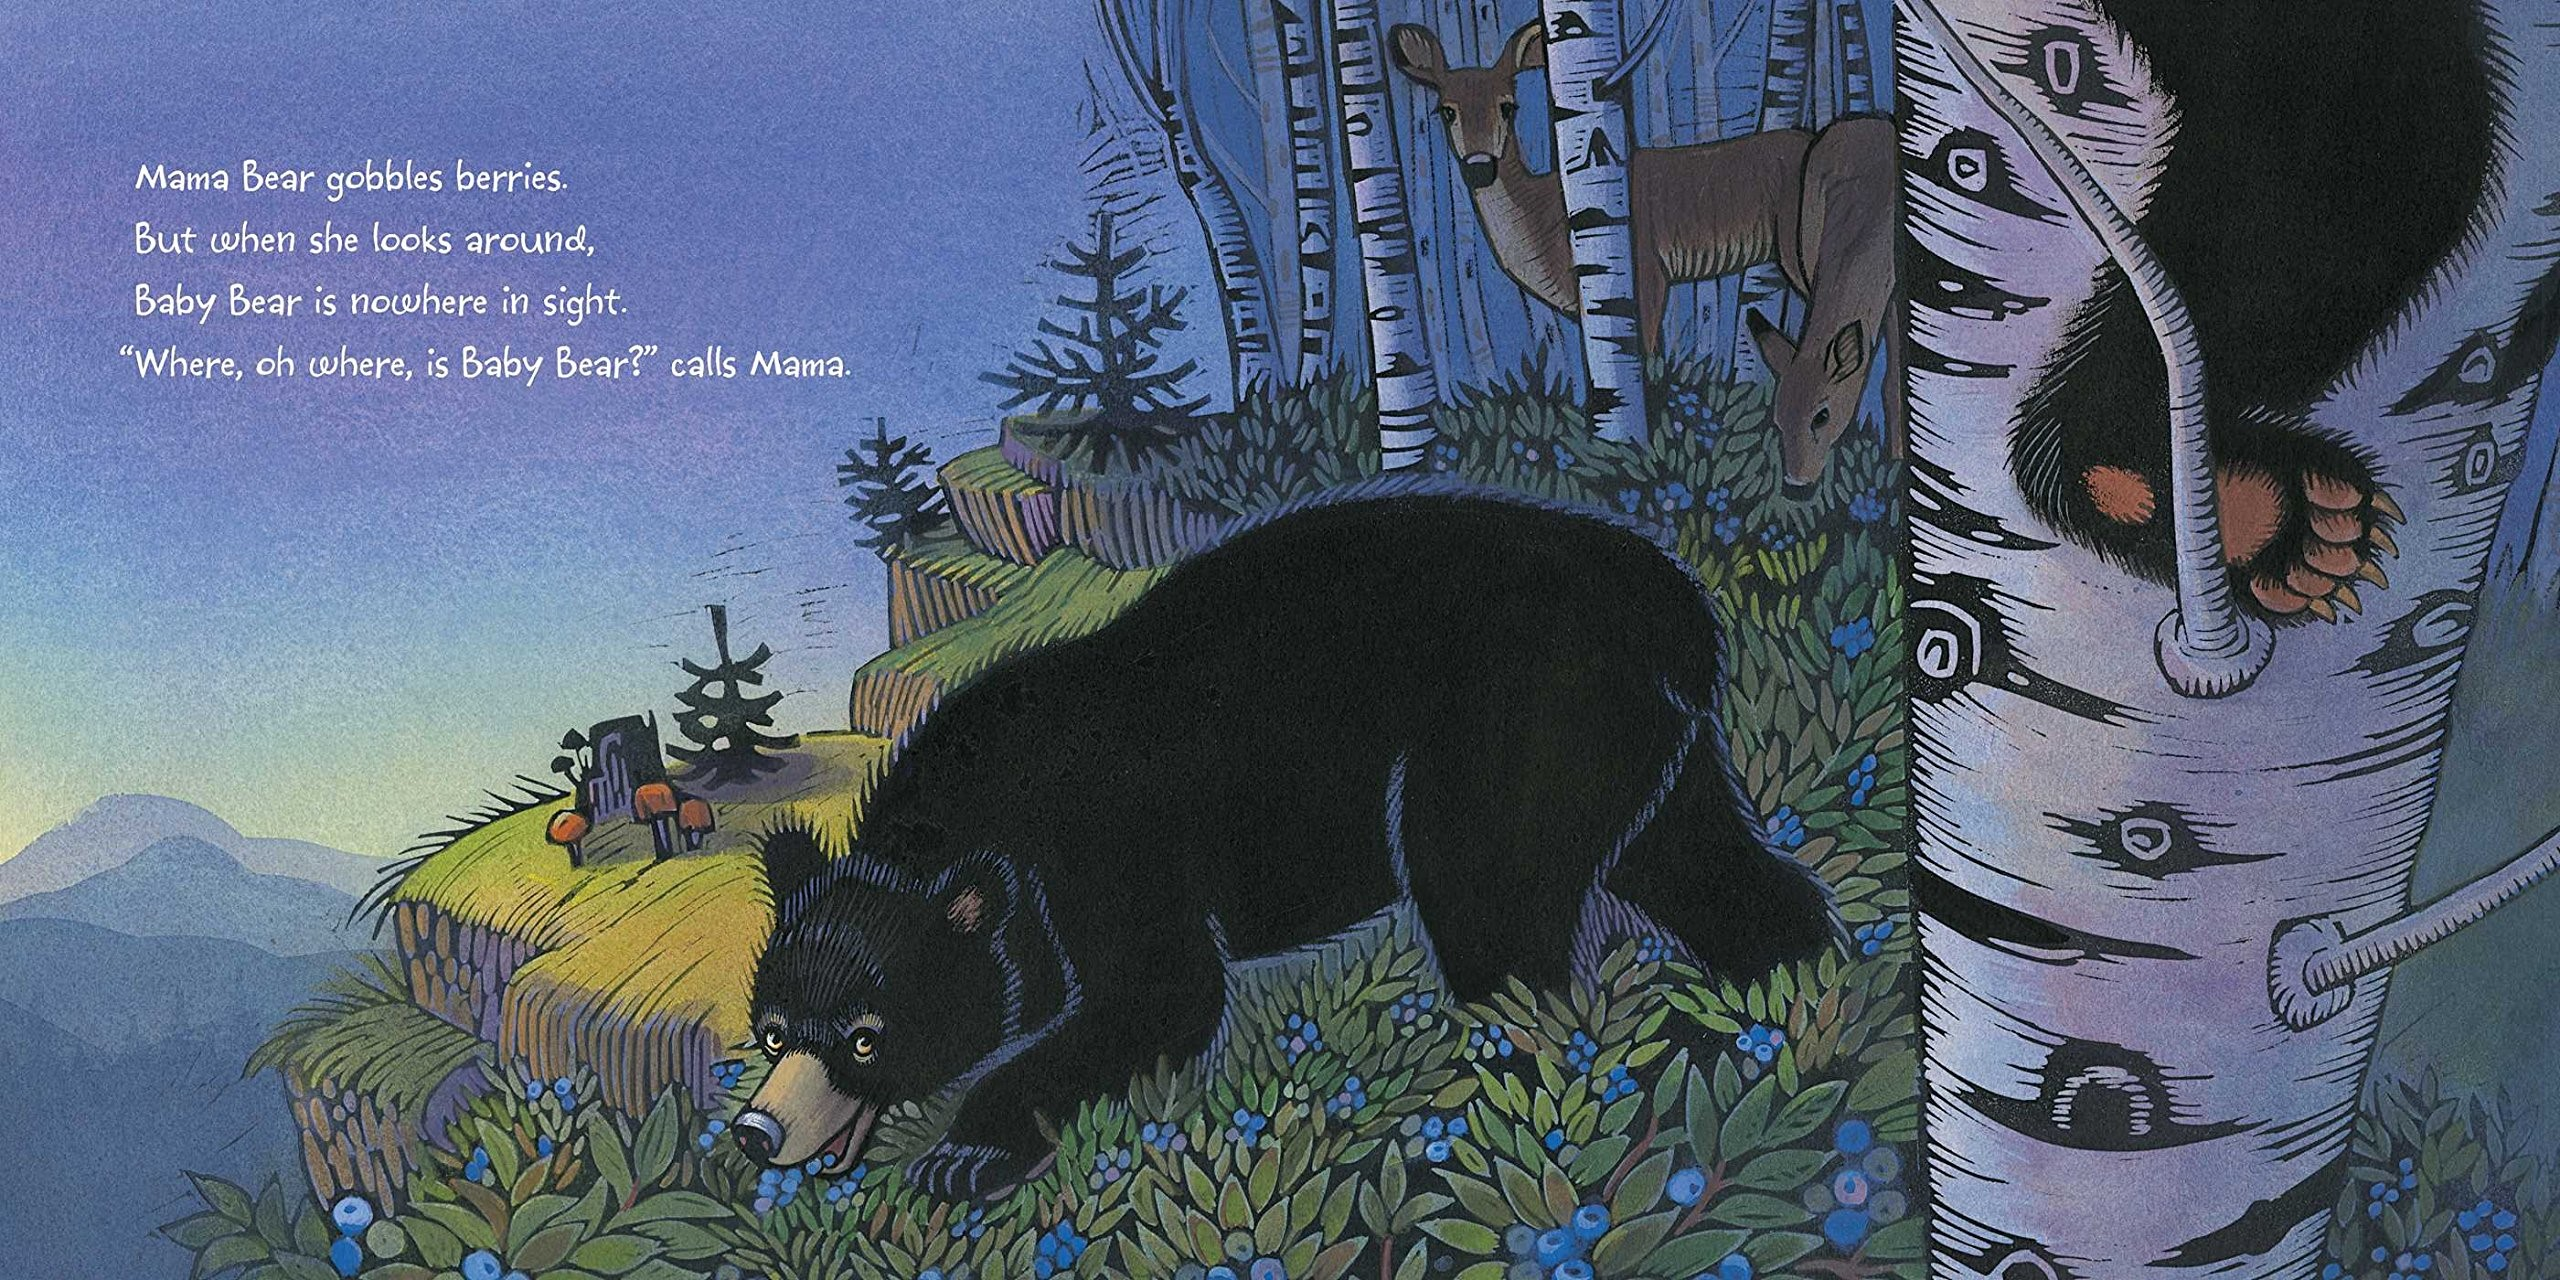 art from Where Oh Where is Baby Bear?